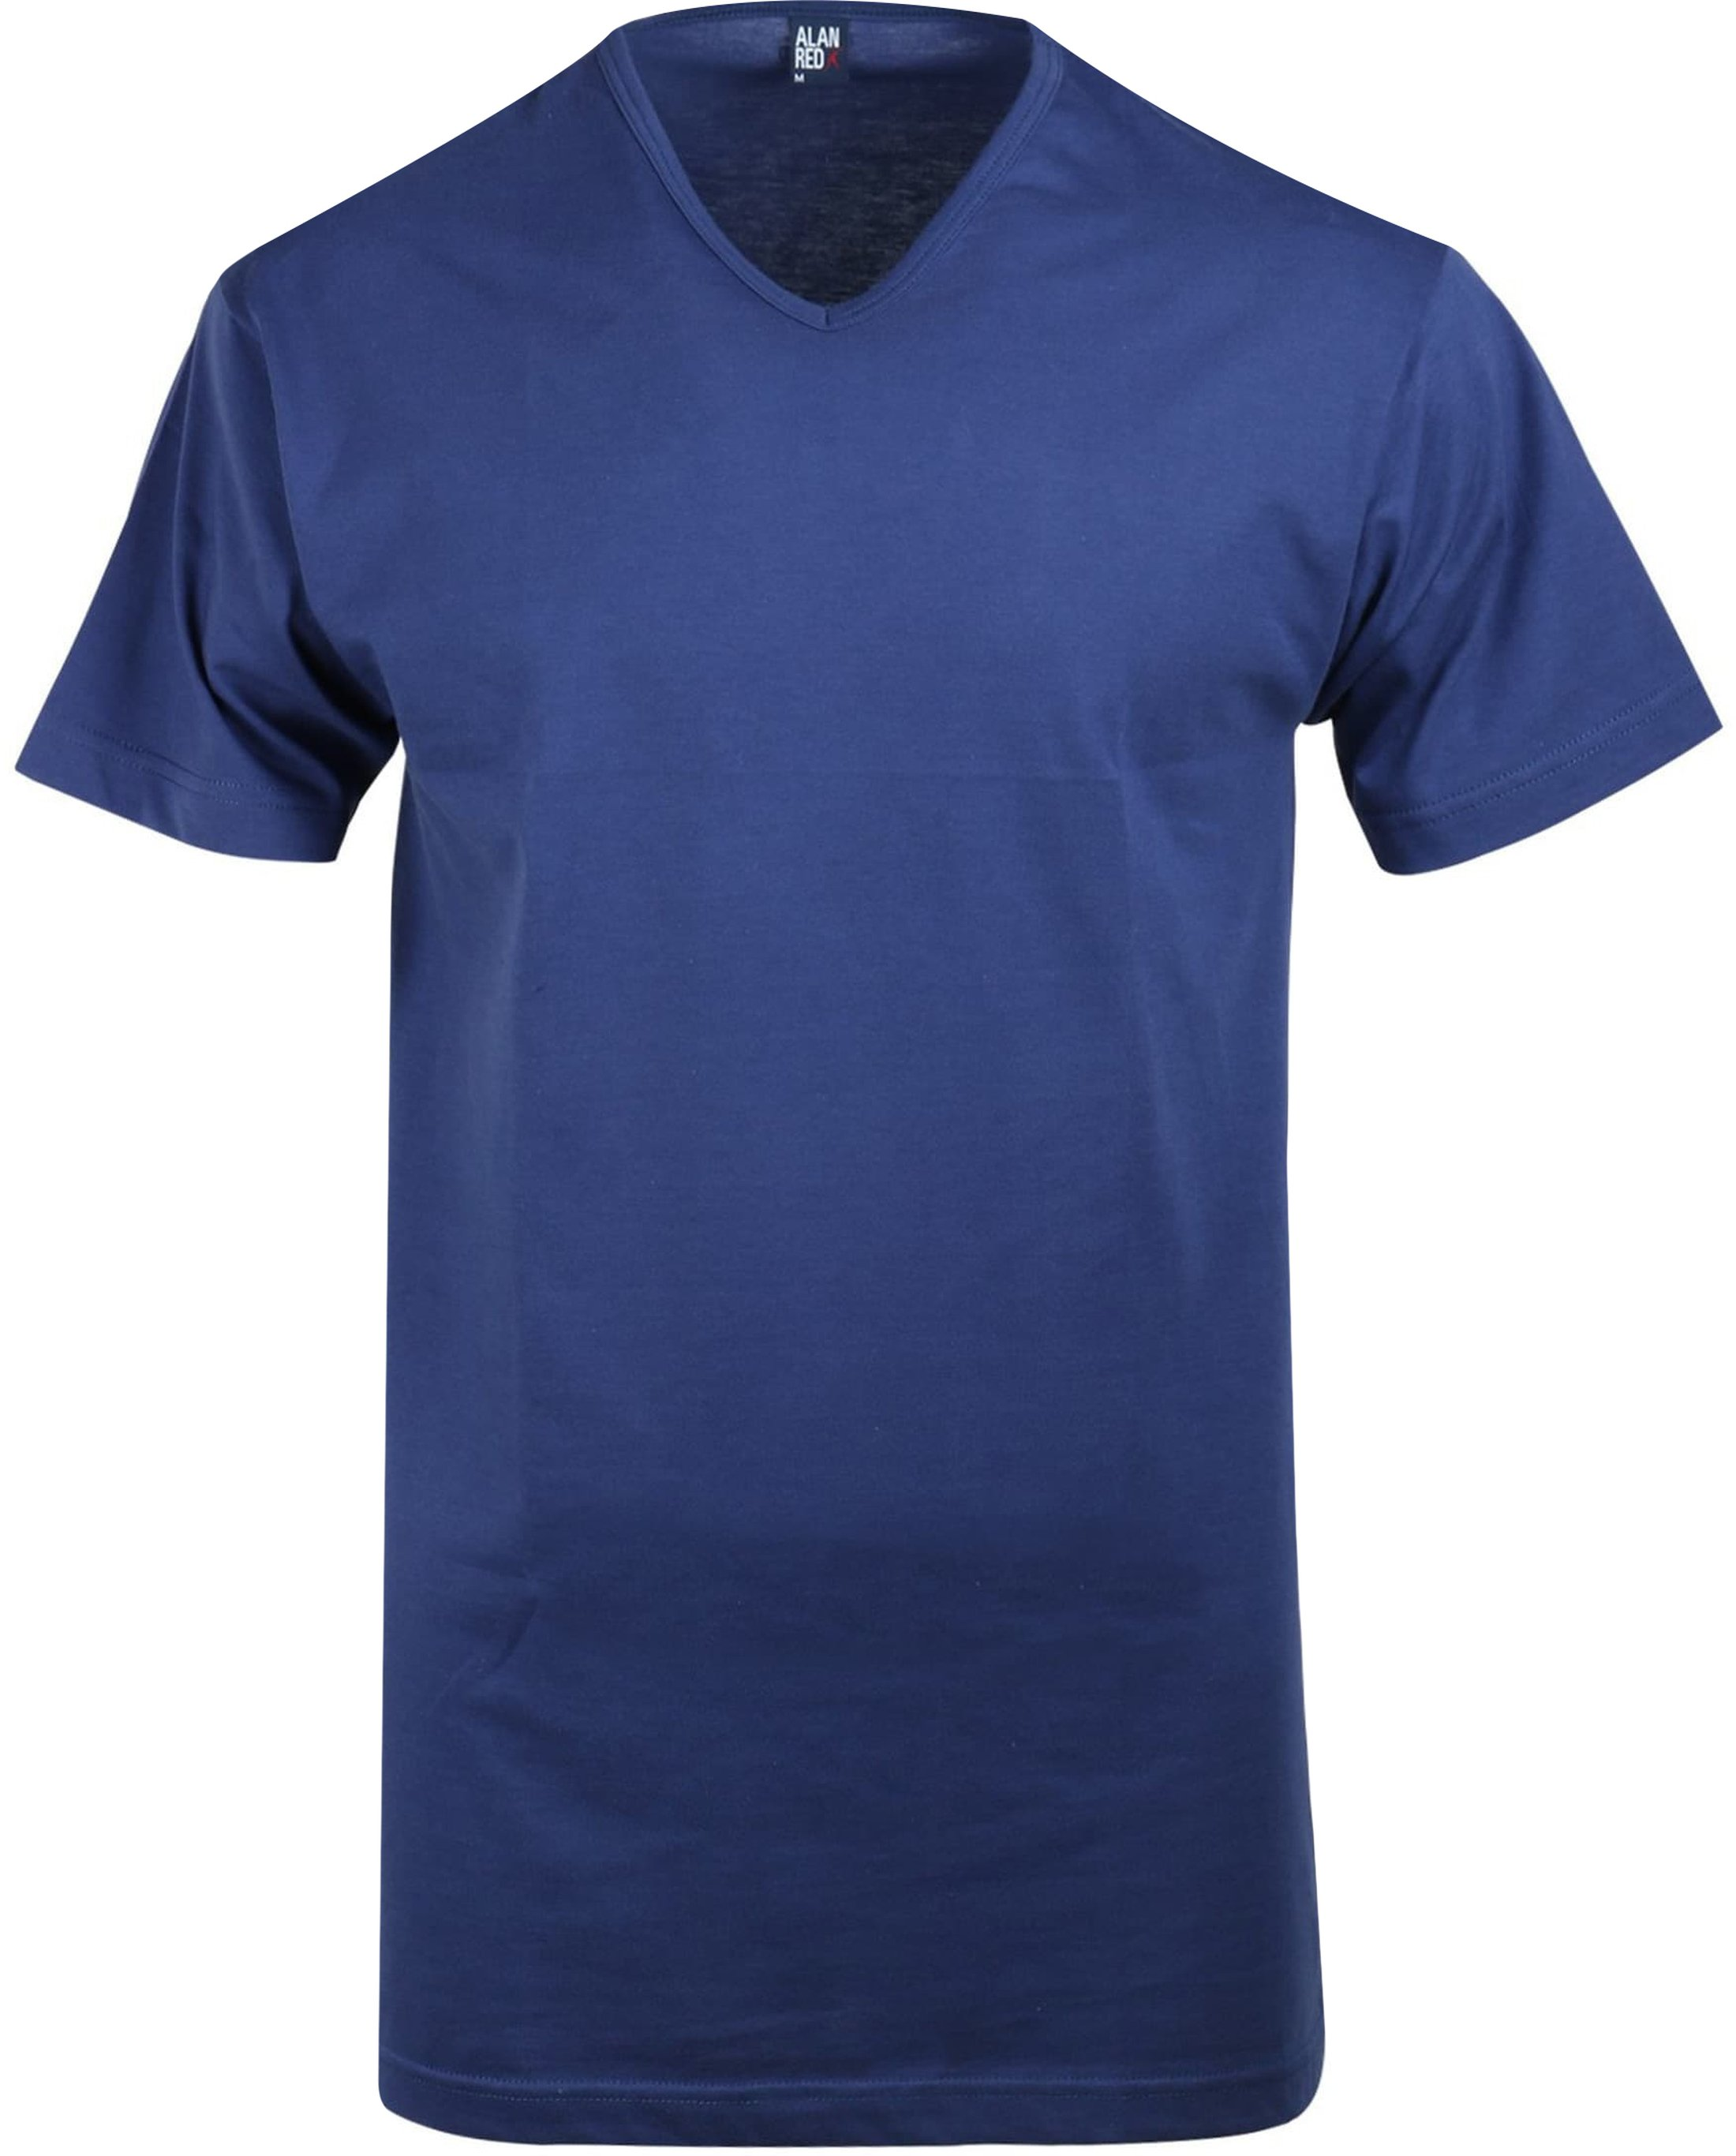 Alan Red Vermont T-shirt V-Neck Ultramarine 1-Pack foto 0